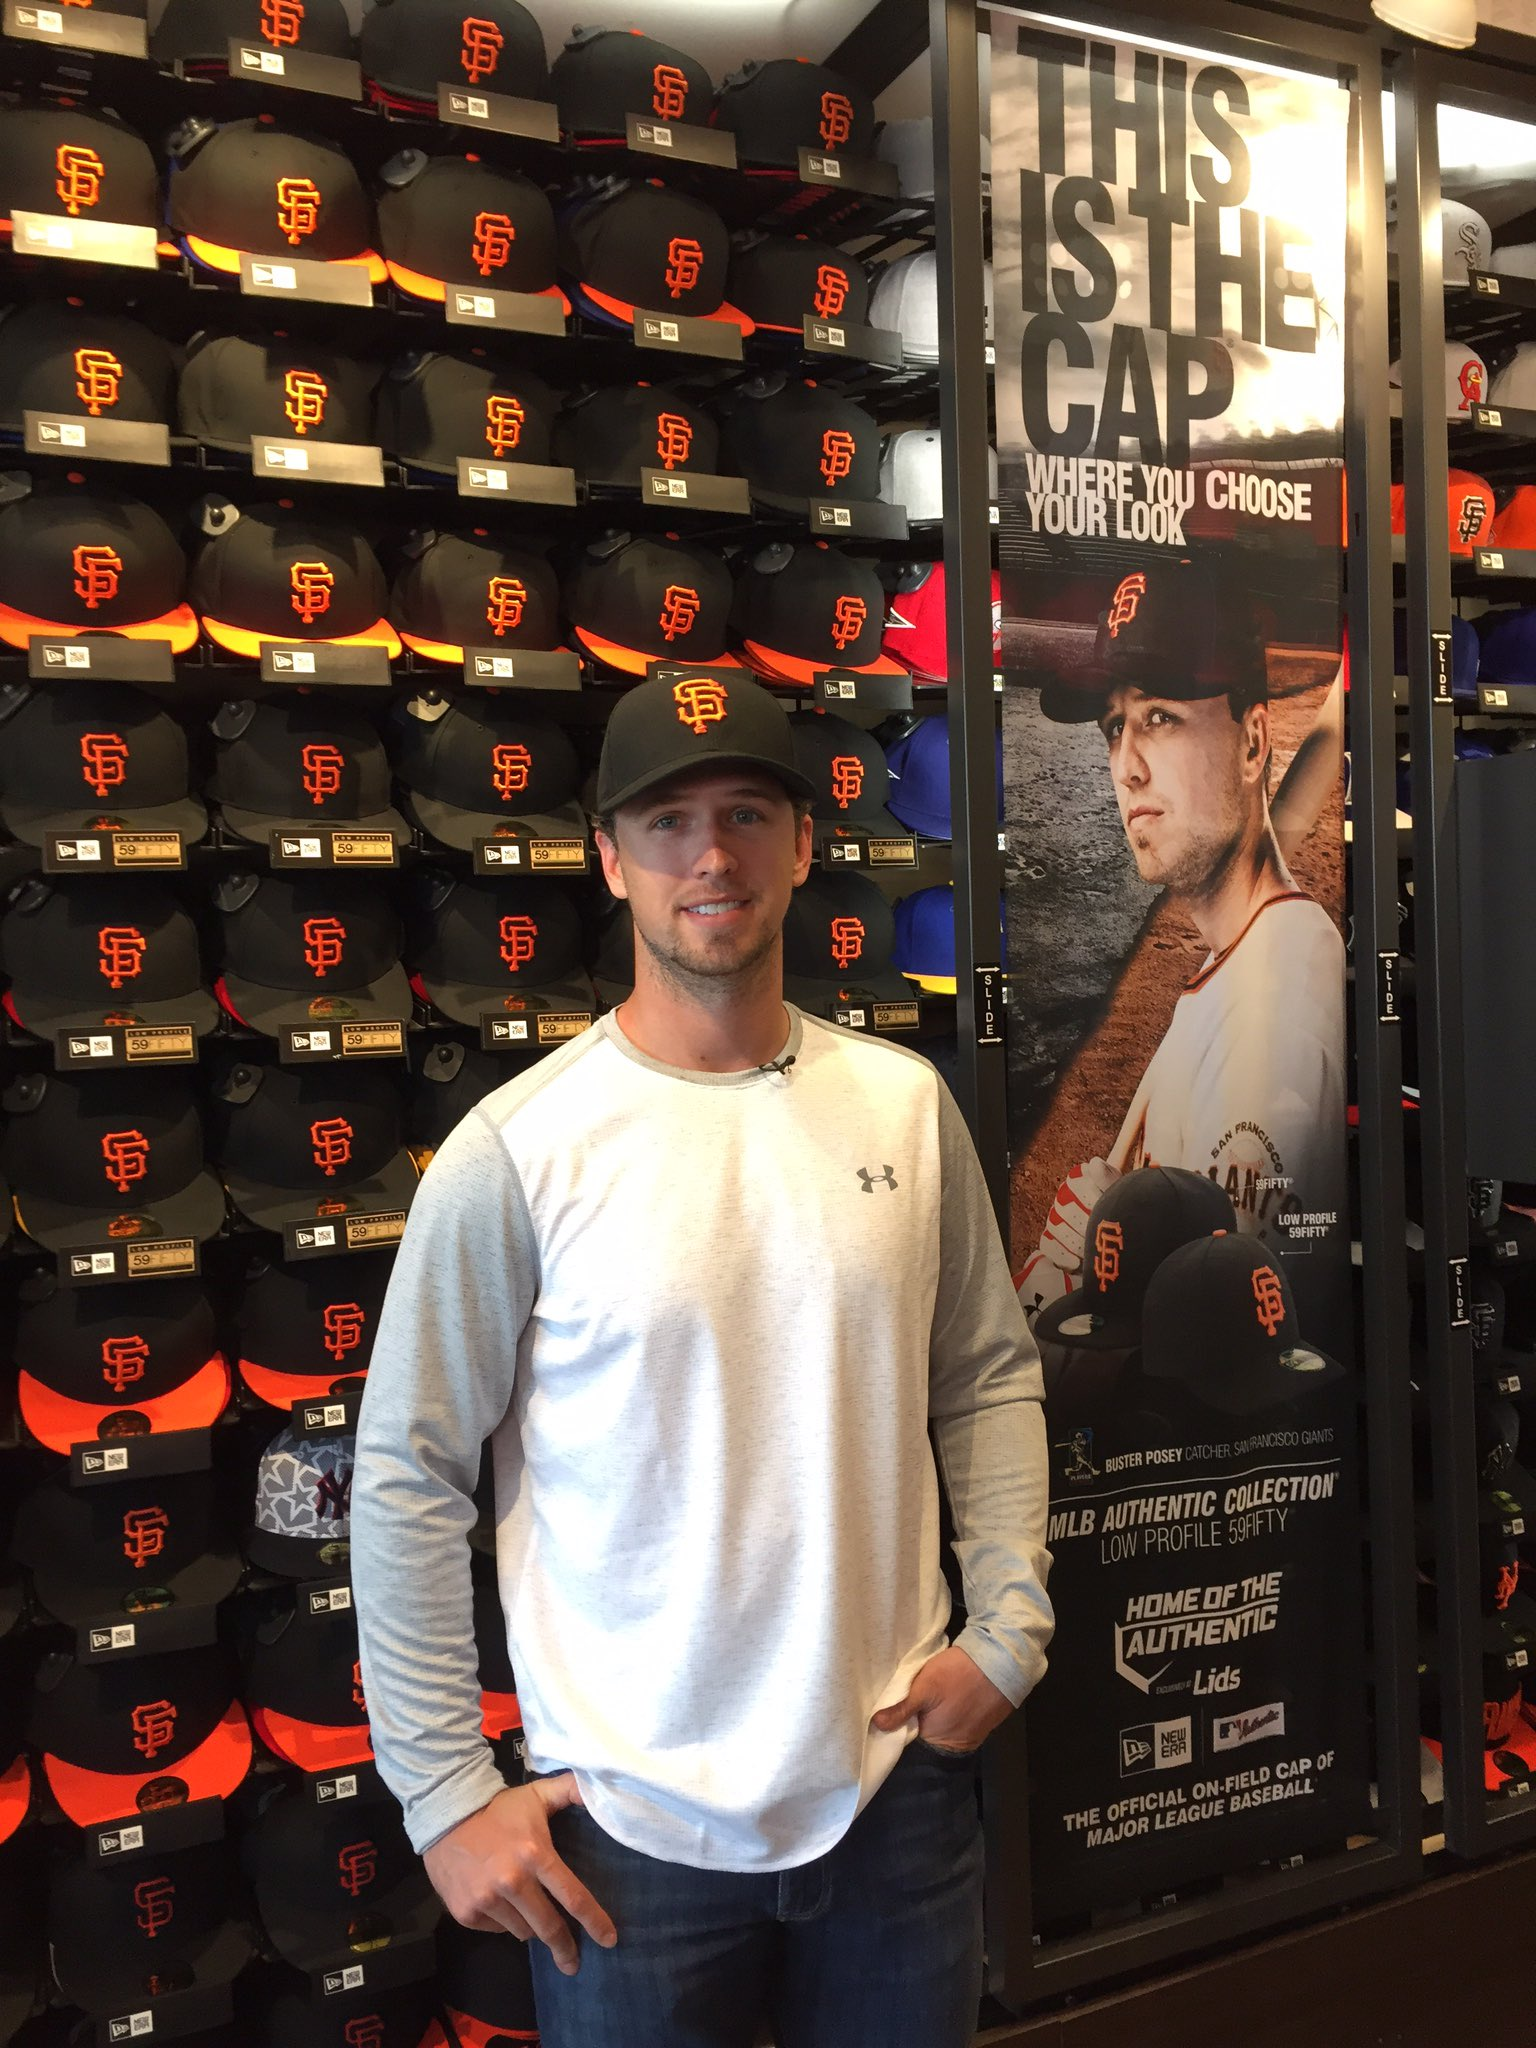 LIDS on Twitter Shout out to BusterPosey hanging on location